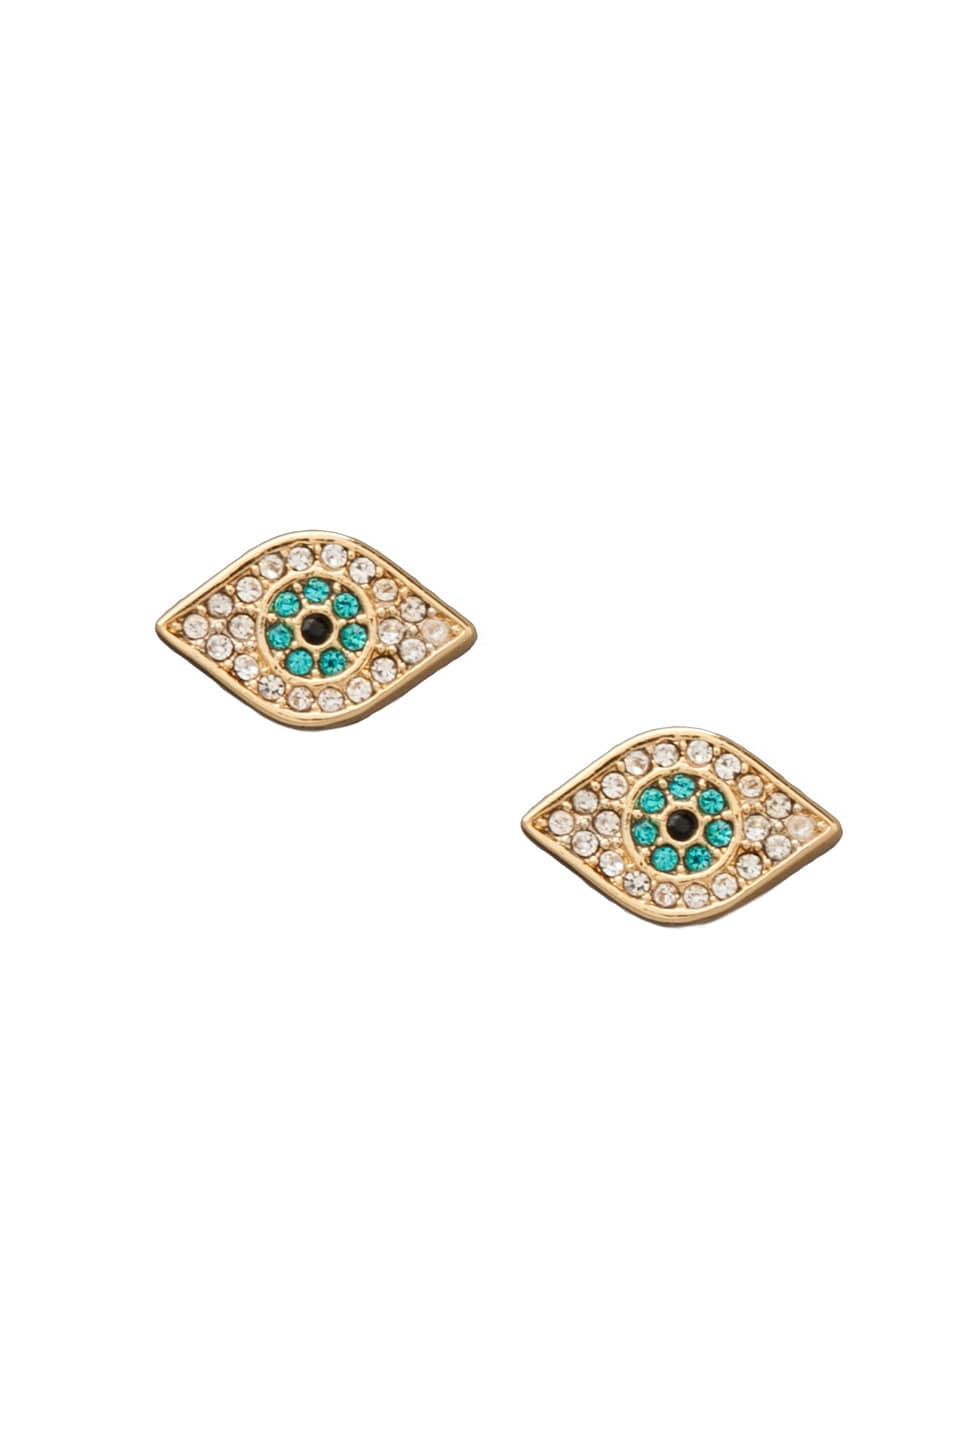 Juicy Couture Evil Eye Stud Earrings in Gold